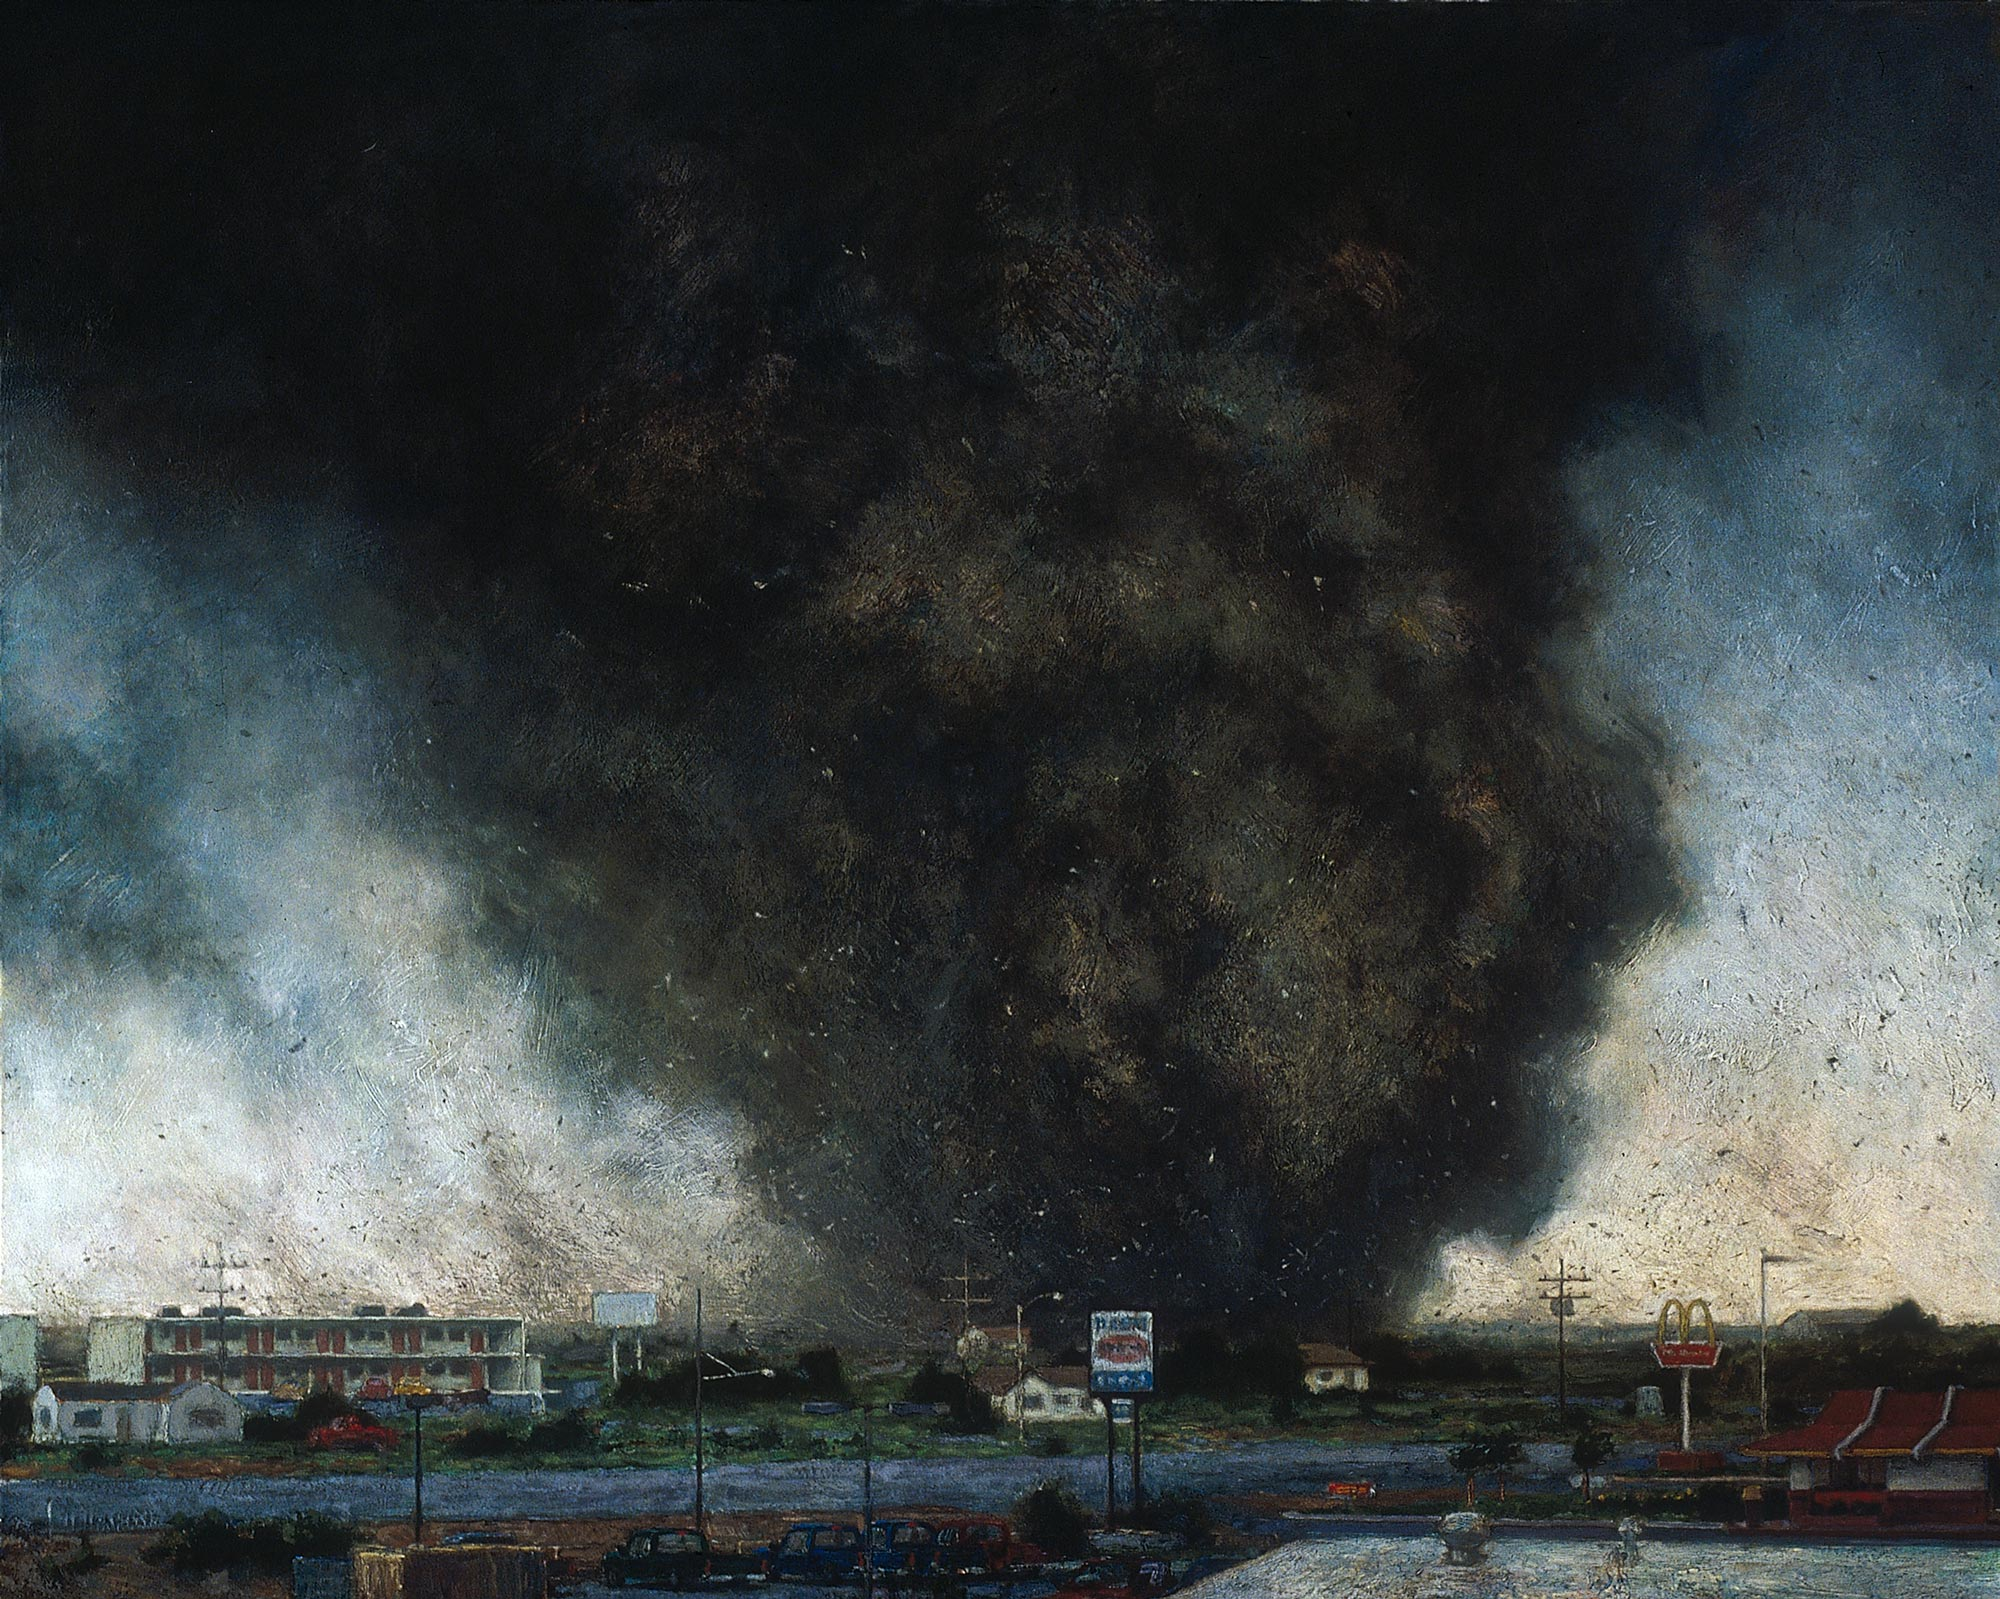 Cleaning, 48 x 60, oil on canvas, 2003